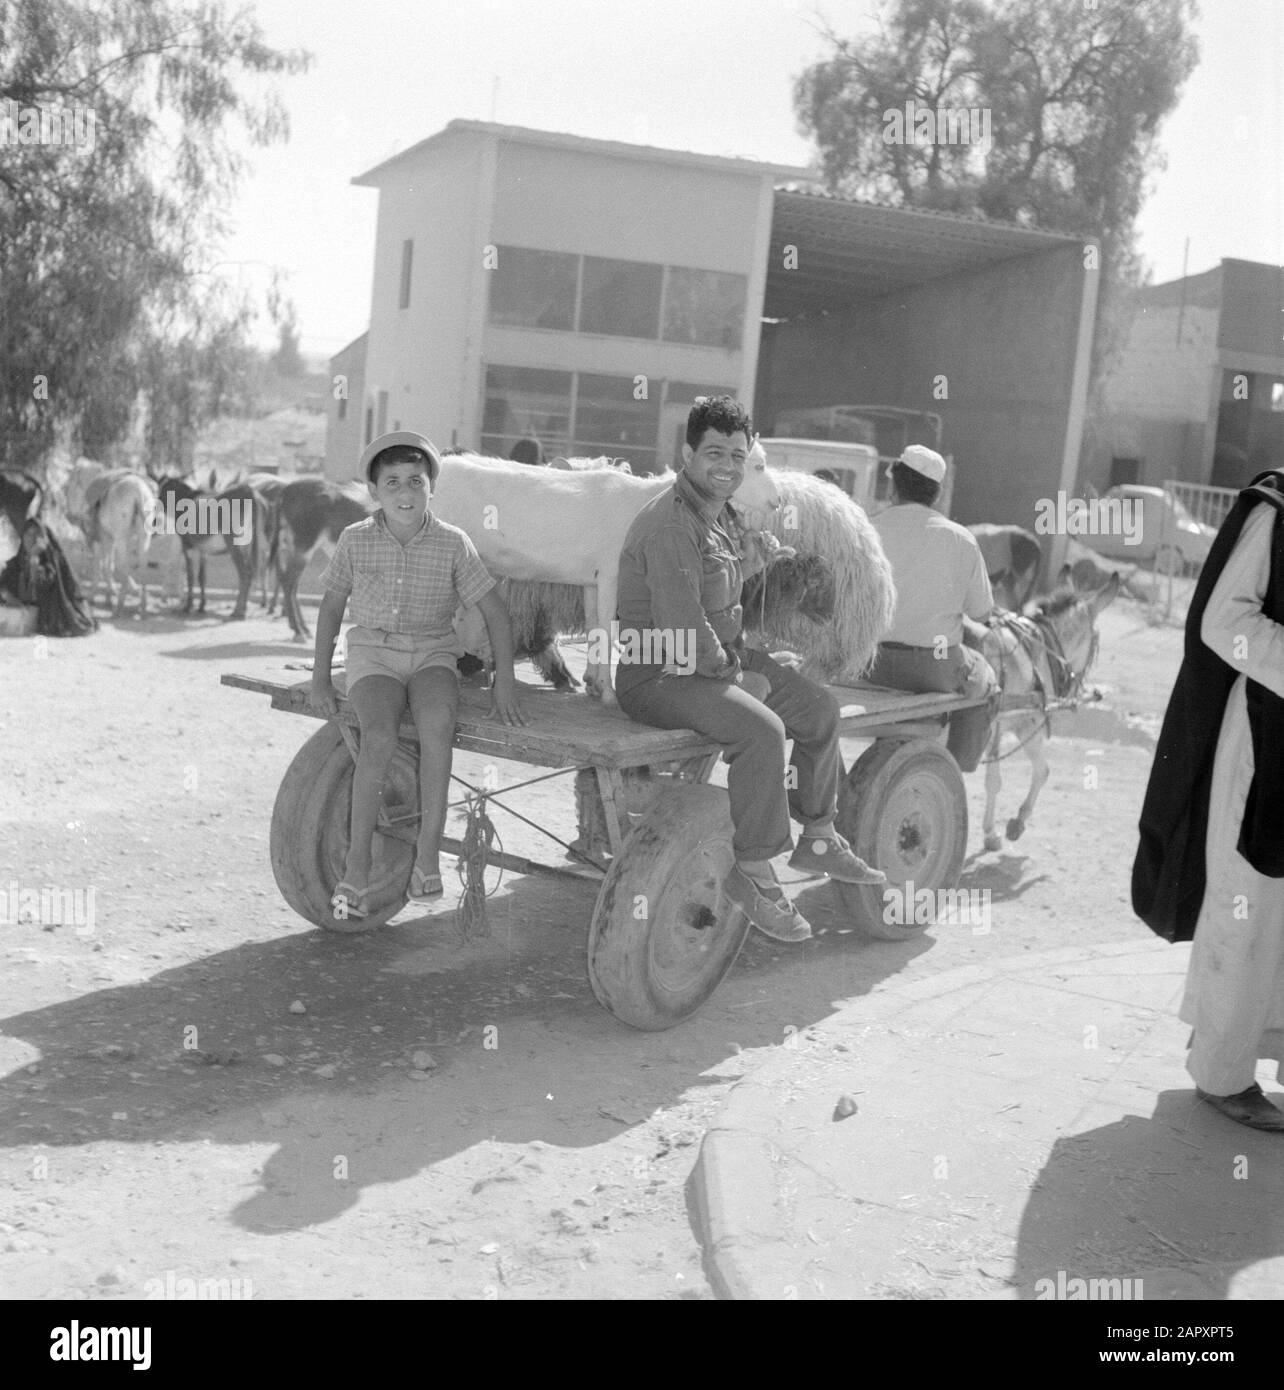 Israel 1960-1965: Bedouins in Beershewa (Beer Sheva)  Two adult men, a child, a sheep and a goat on a weft on pneumatic tires pulled by a donkey on the market of Beersjeba. In the background some donkeys and mules Date: January 1, 1960 Location: Bersheba, Israel Keywords: donkeys, goats, trade, carts, children, markets, sheep, street images, transport Stock Photo